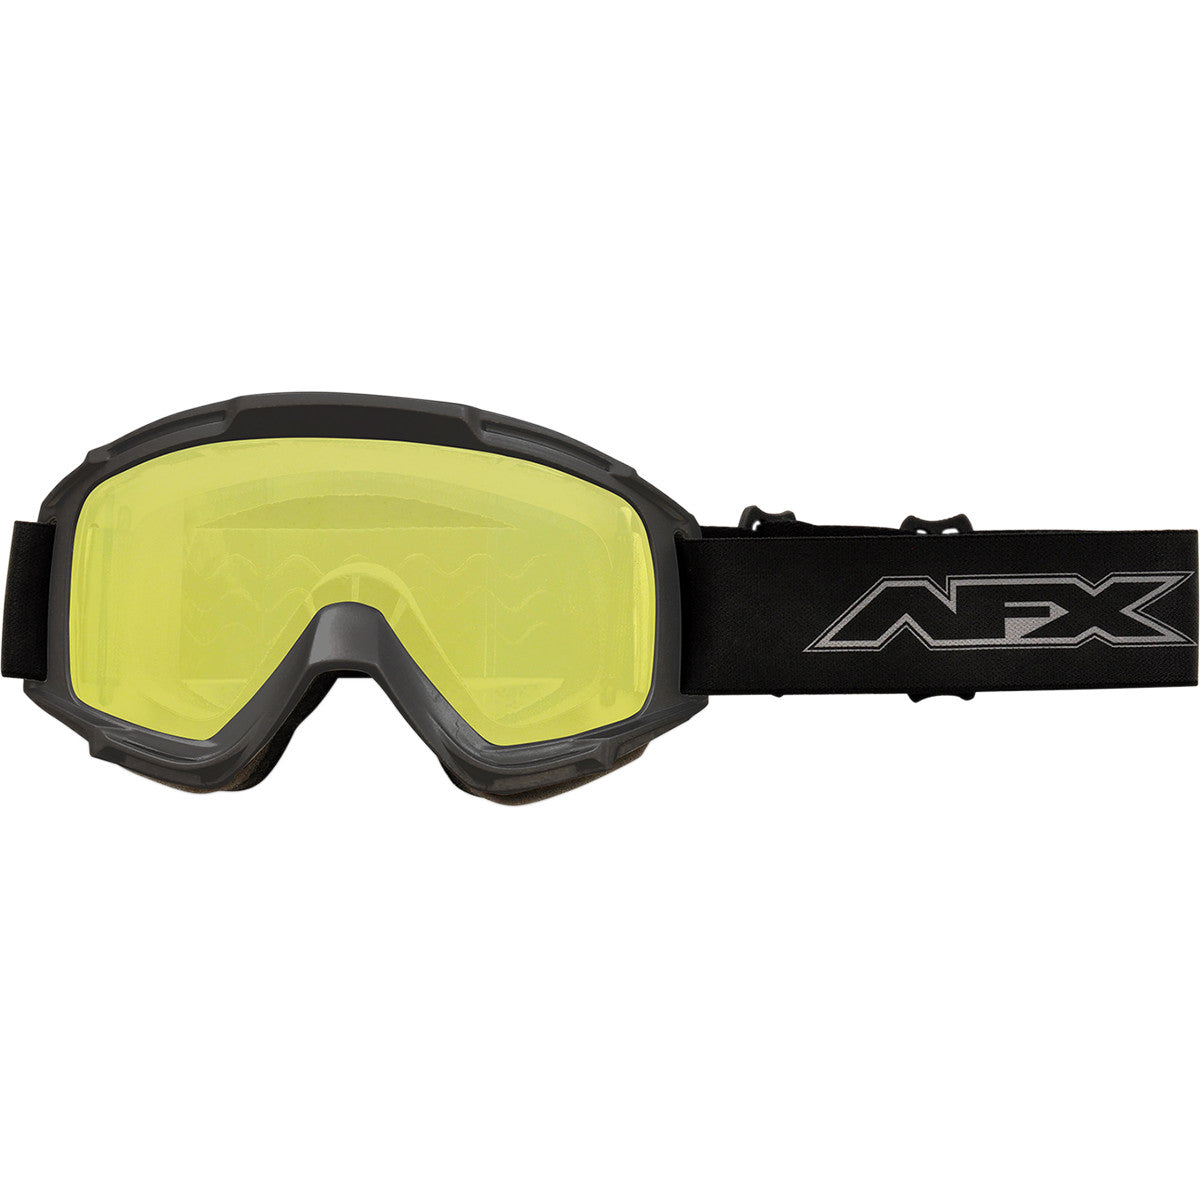 AFX HELMET COLD WEATHER DOUBLE LENS GOOGLES